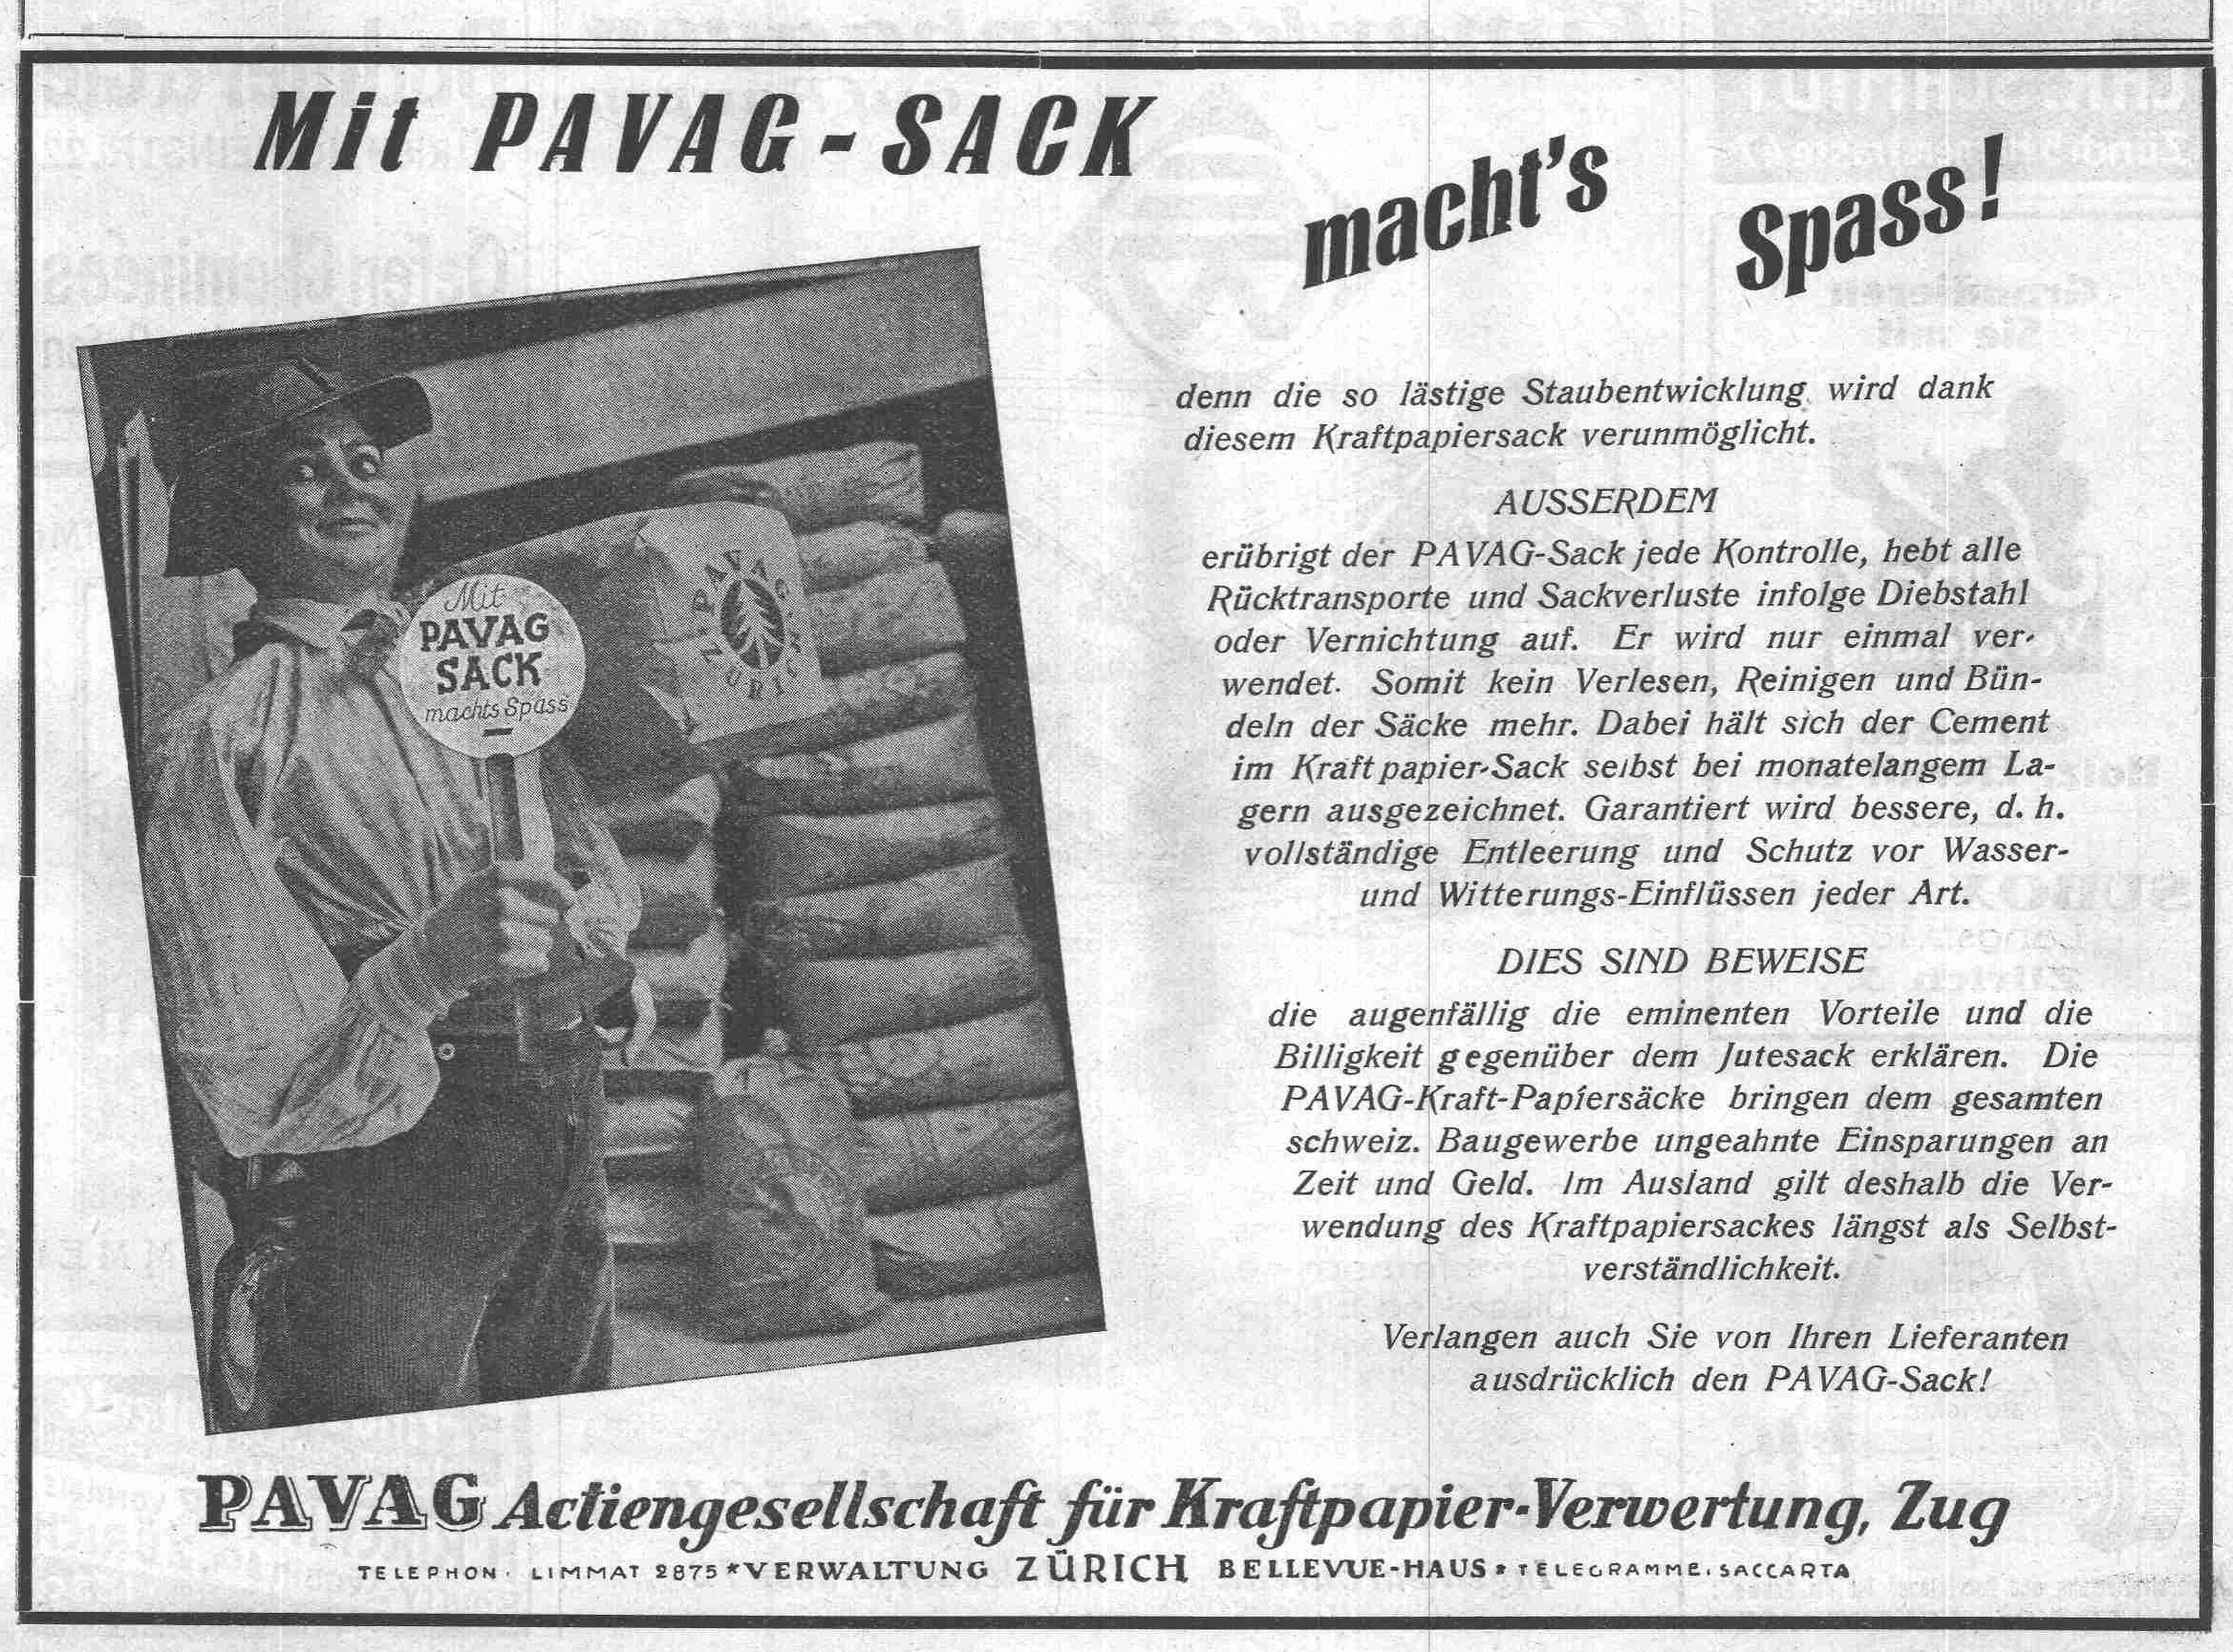 1928 - The PAVAG bag